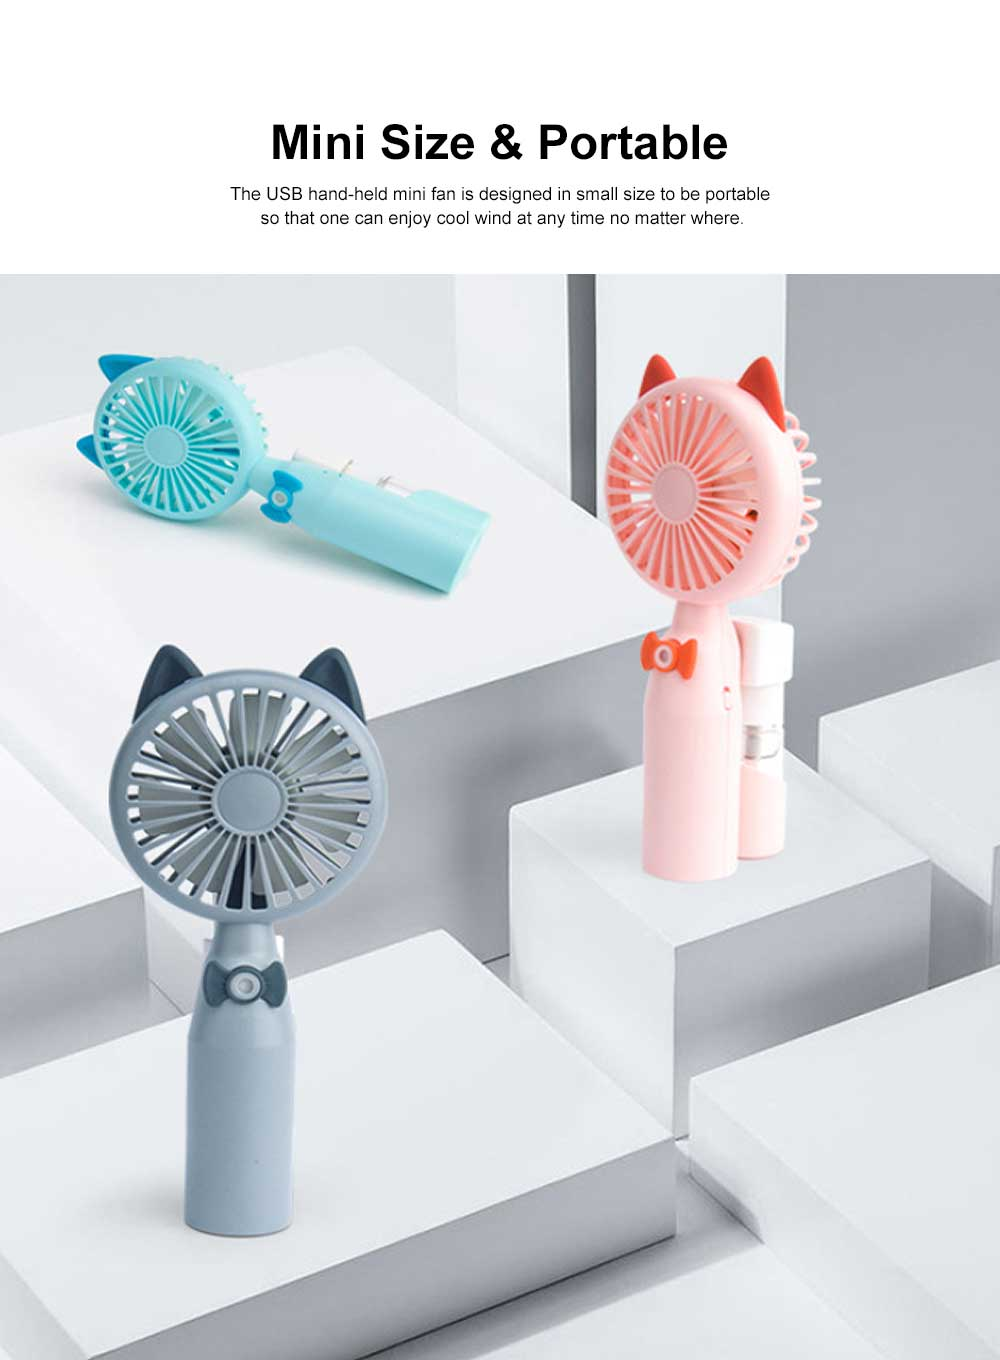 Mini USB Hand-held Fan Lovely Cartoon Cat Portable Spraying Humidifier Small Size Fan with Mesh Enclosure For Summer Use 3